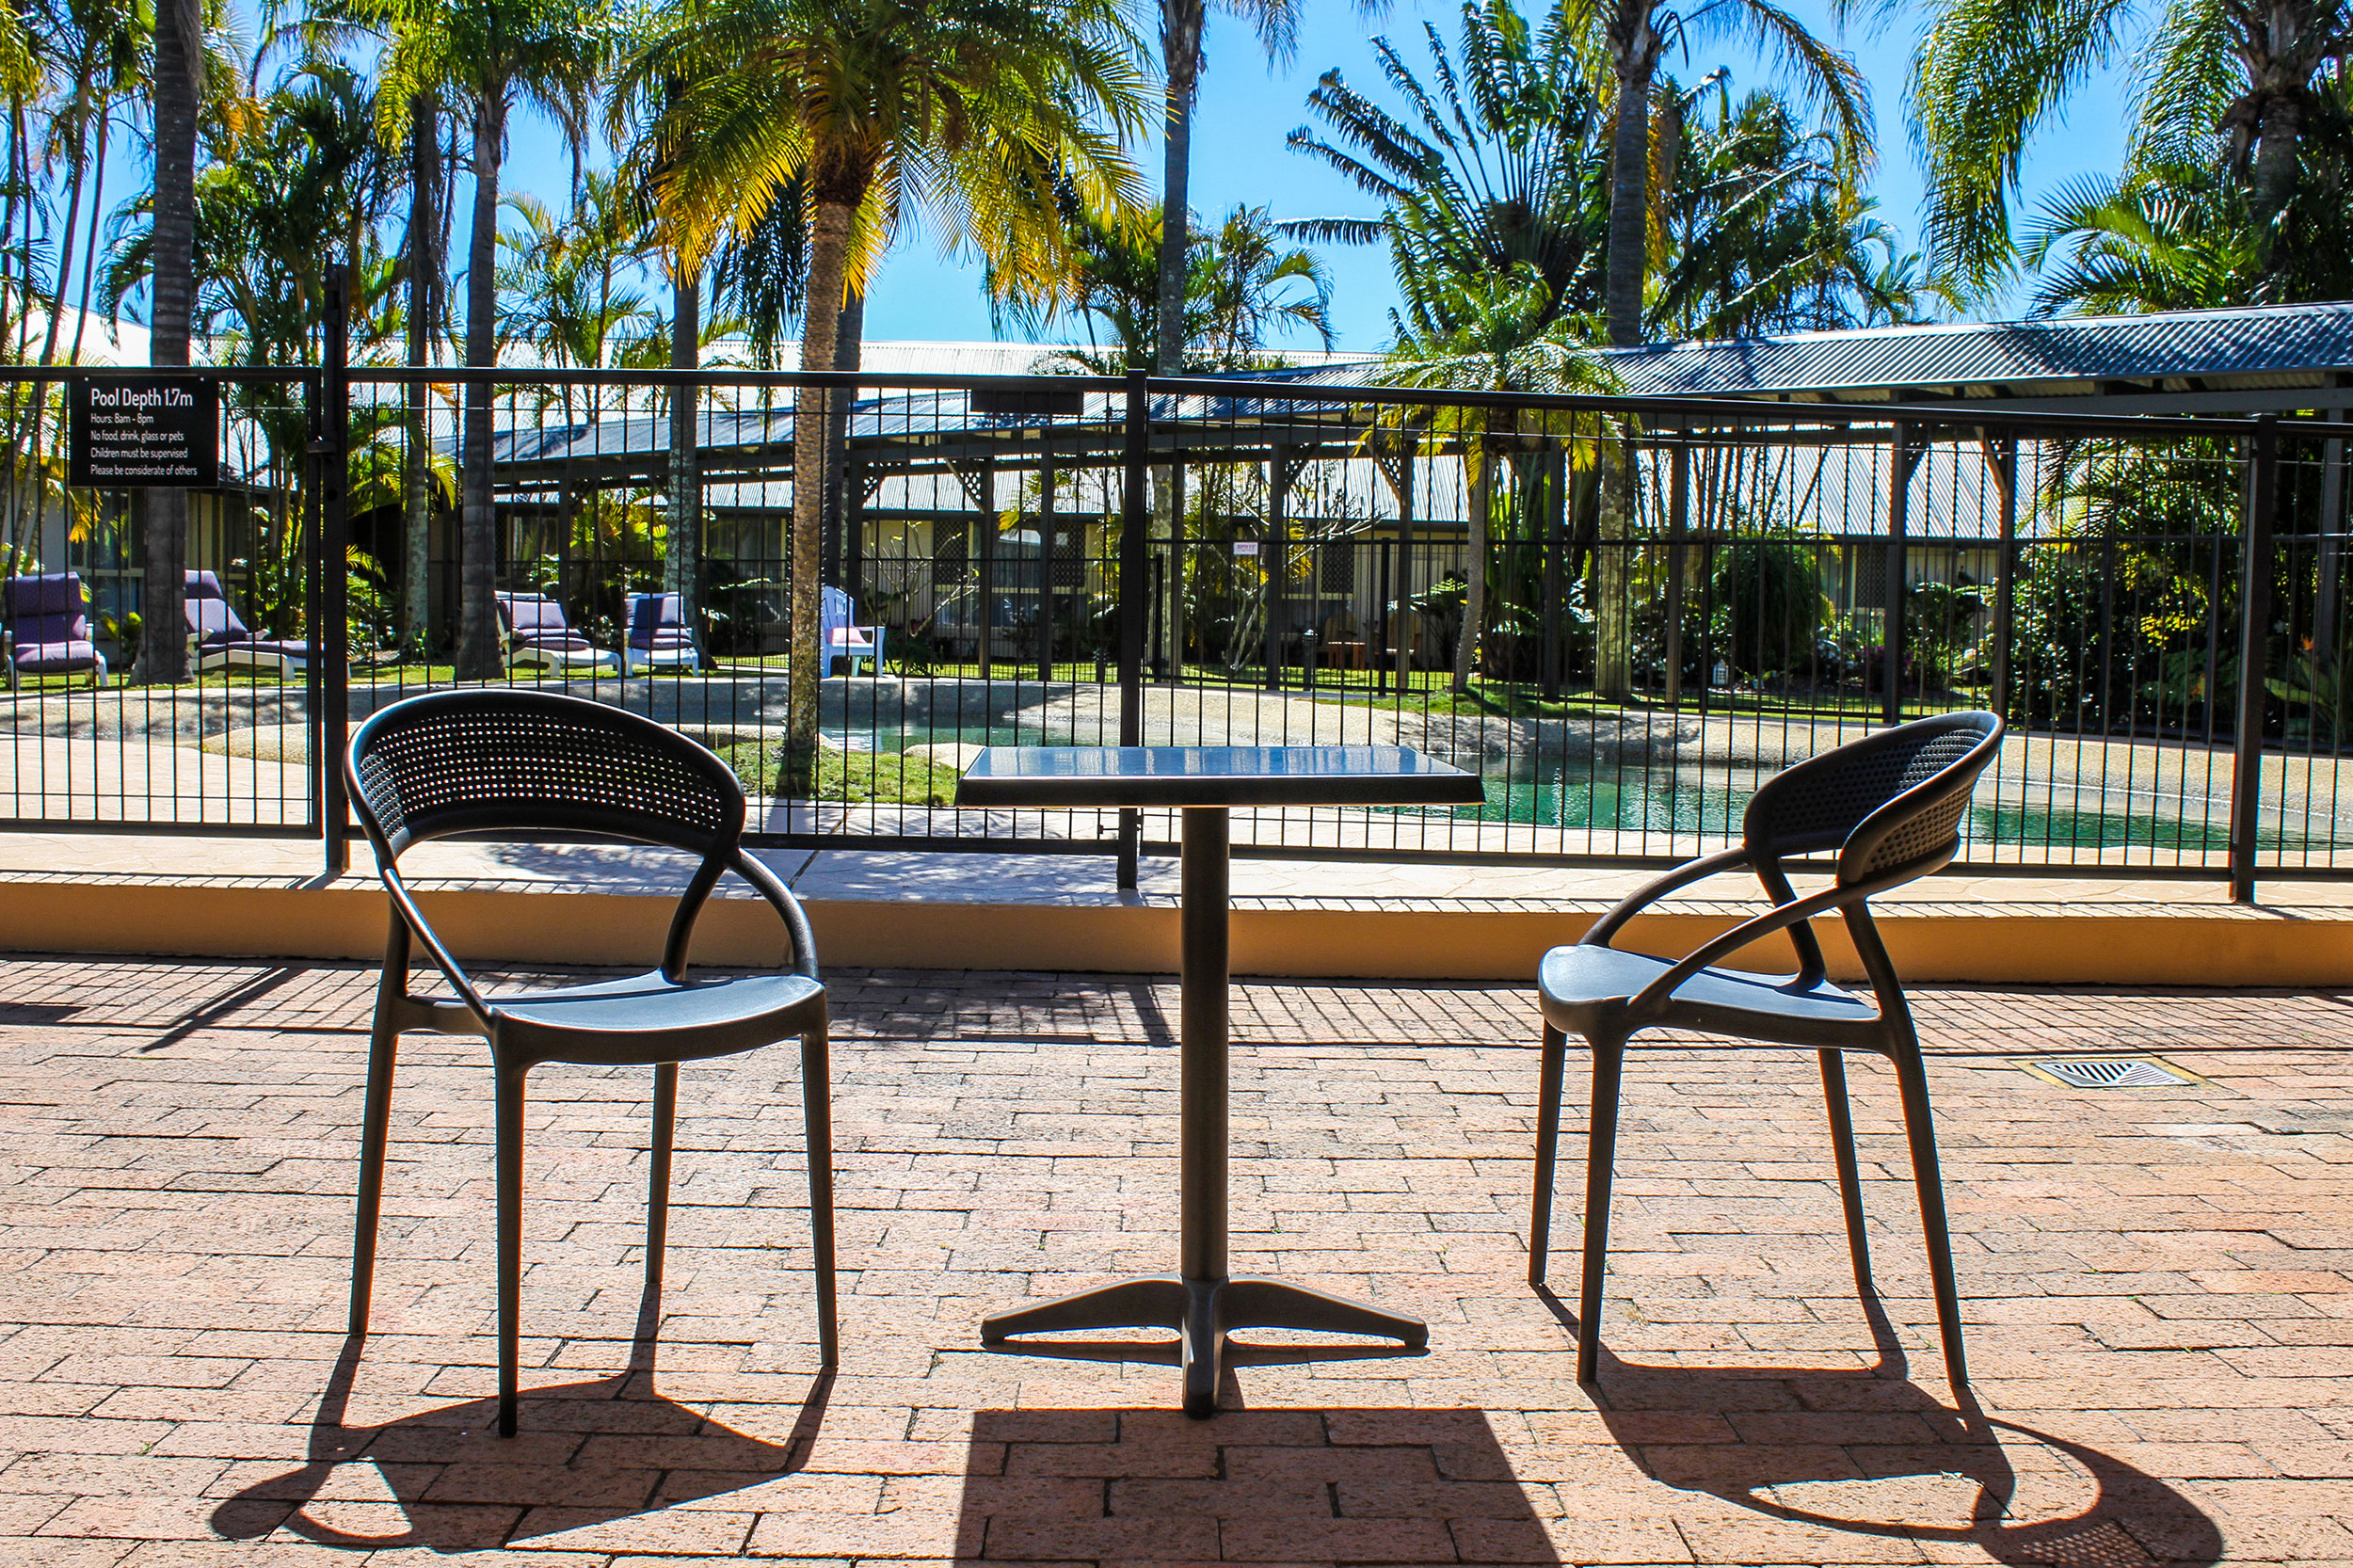 Name : Ballina Byron Islander Resort